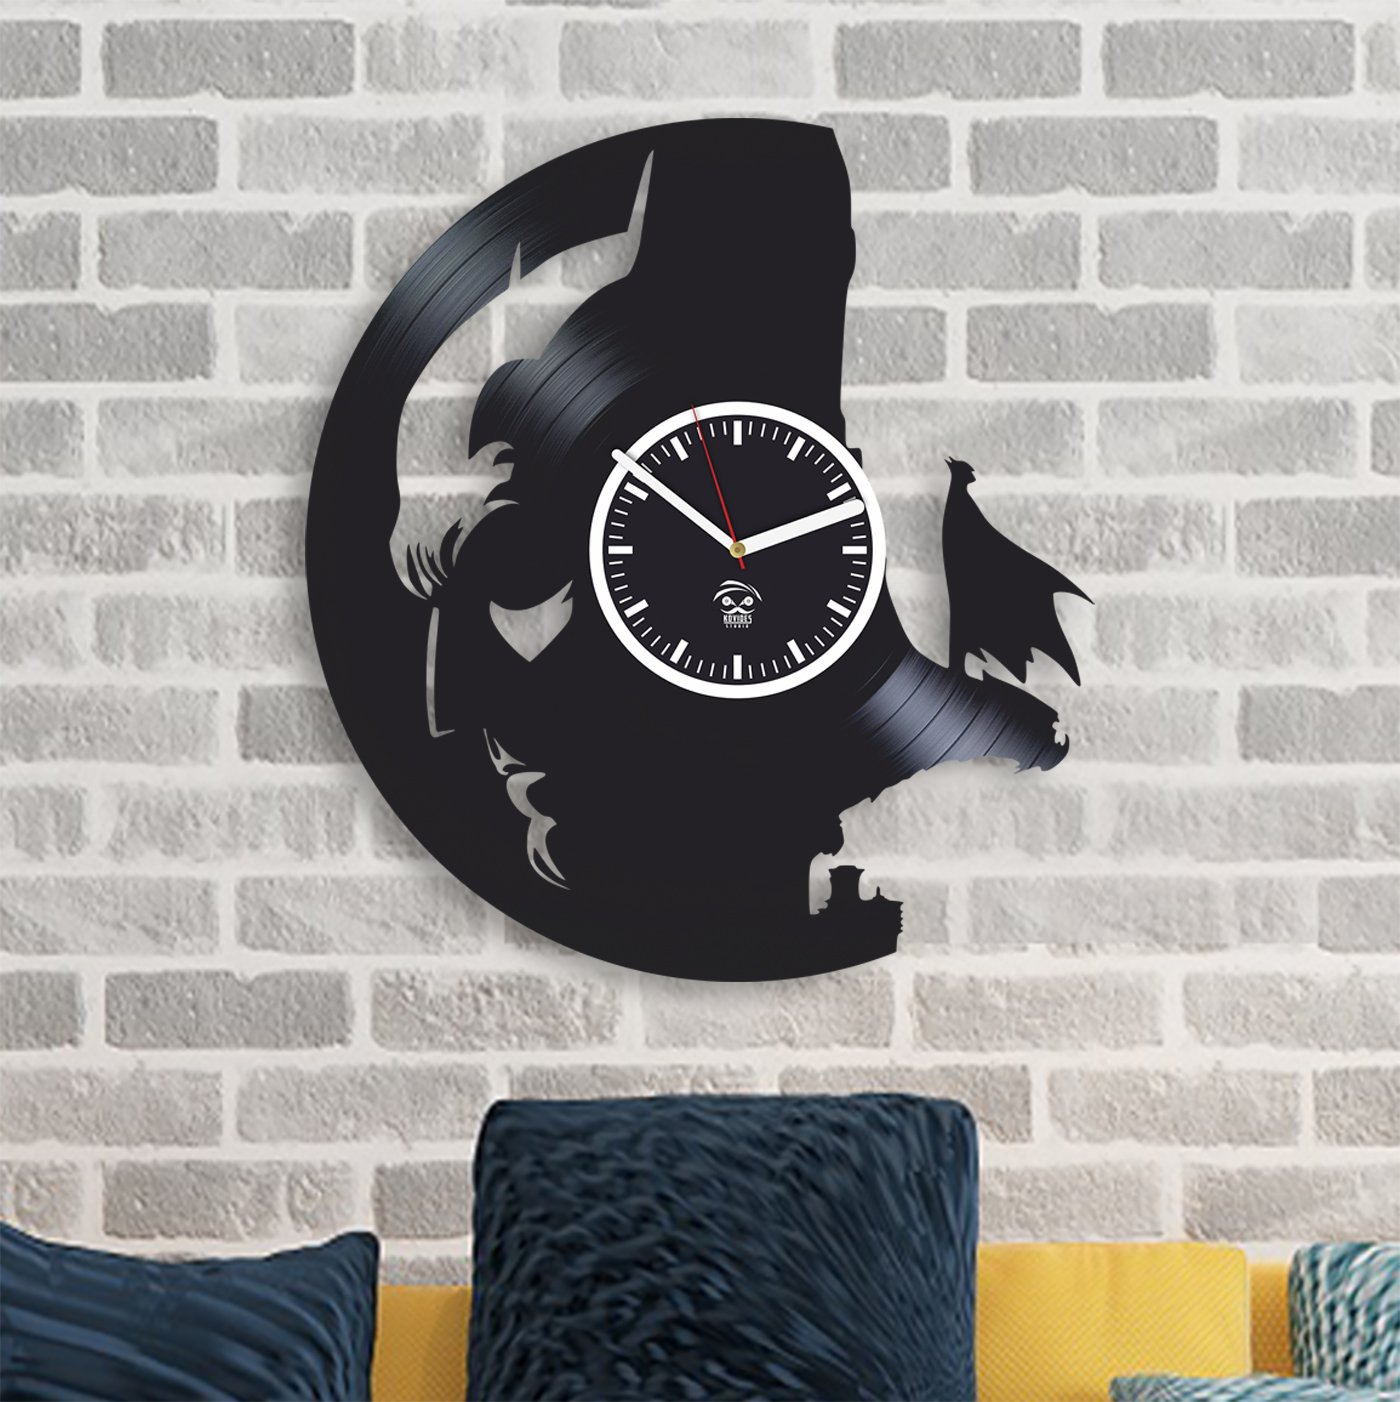 Kovides Batman Face Knightfall Returns Super Hero Vinyl Record Best Gift for Him Vinyl Wall Clock Home Decor, Decoration Living Room Inspirational Comics Marvel Movie, Silent Mechanism, Wall Sticker